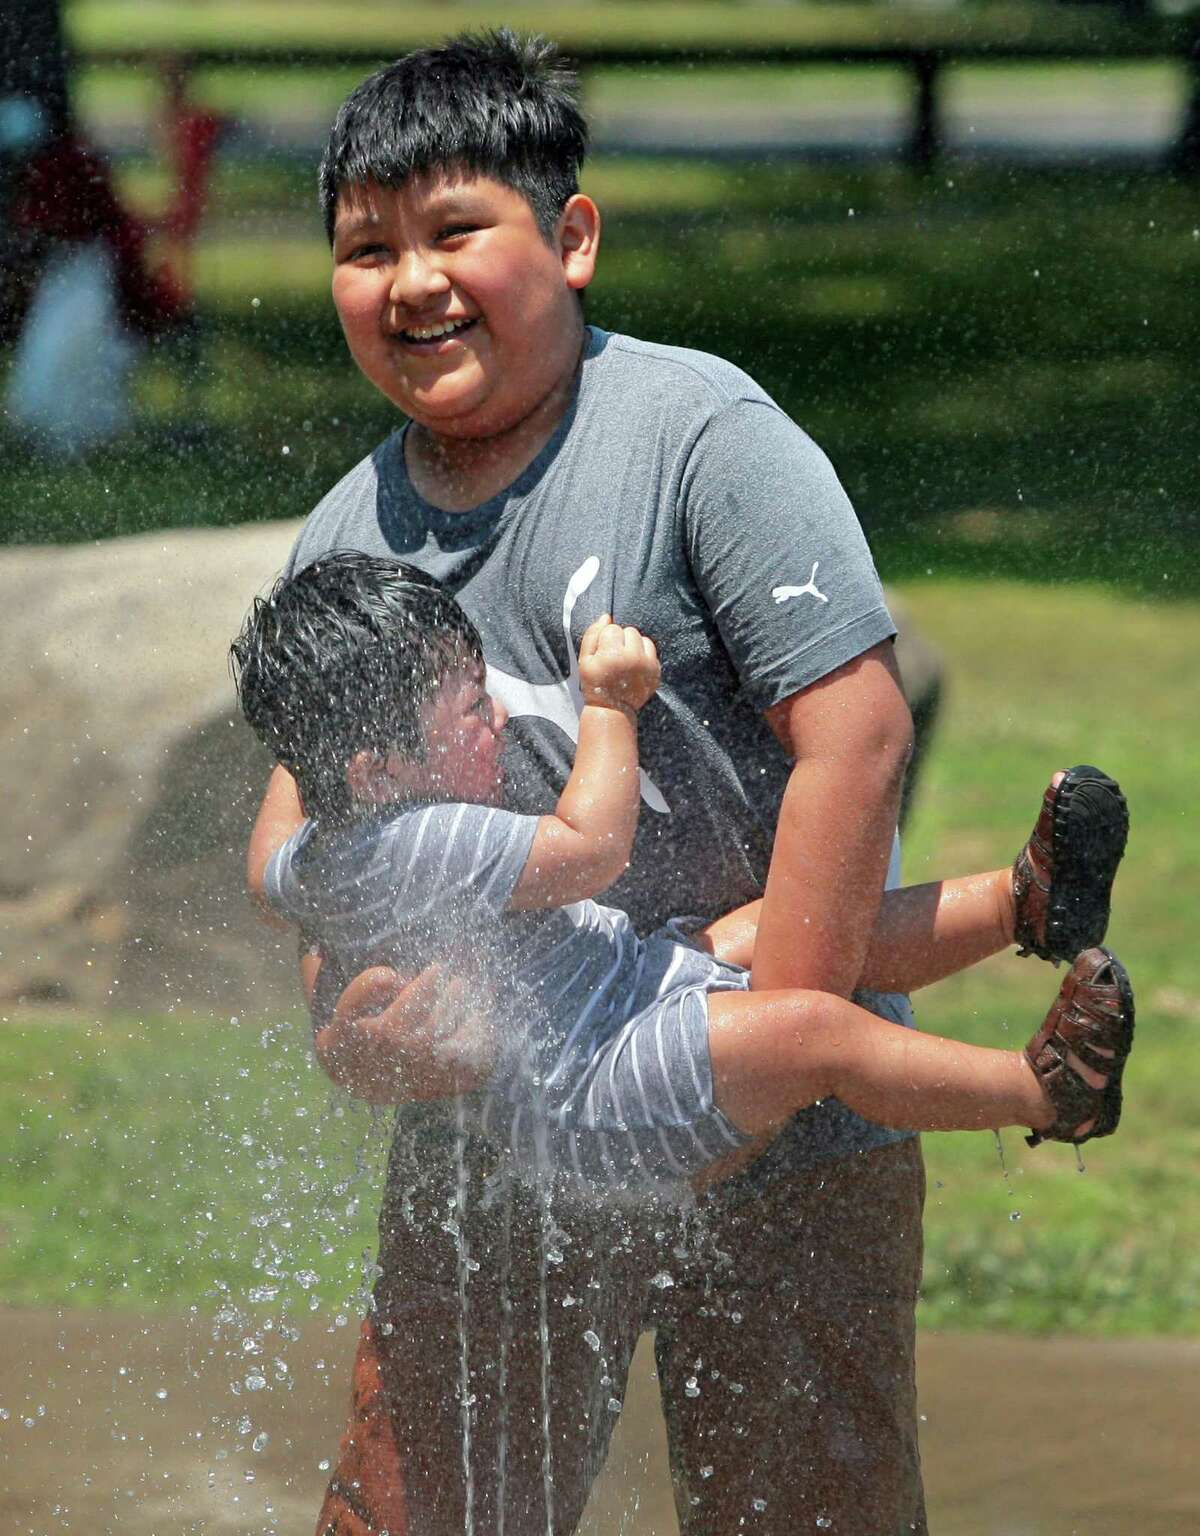 Selvin Castillo, 10, holds his baby brother Leon, 1, in the water from the splash pad at Scalzi Park.in Stamford, Conn., on Friday June 18, 2021.